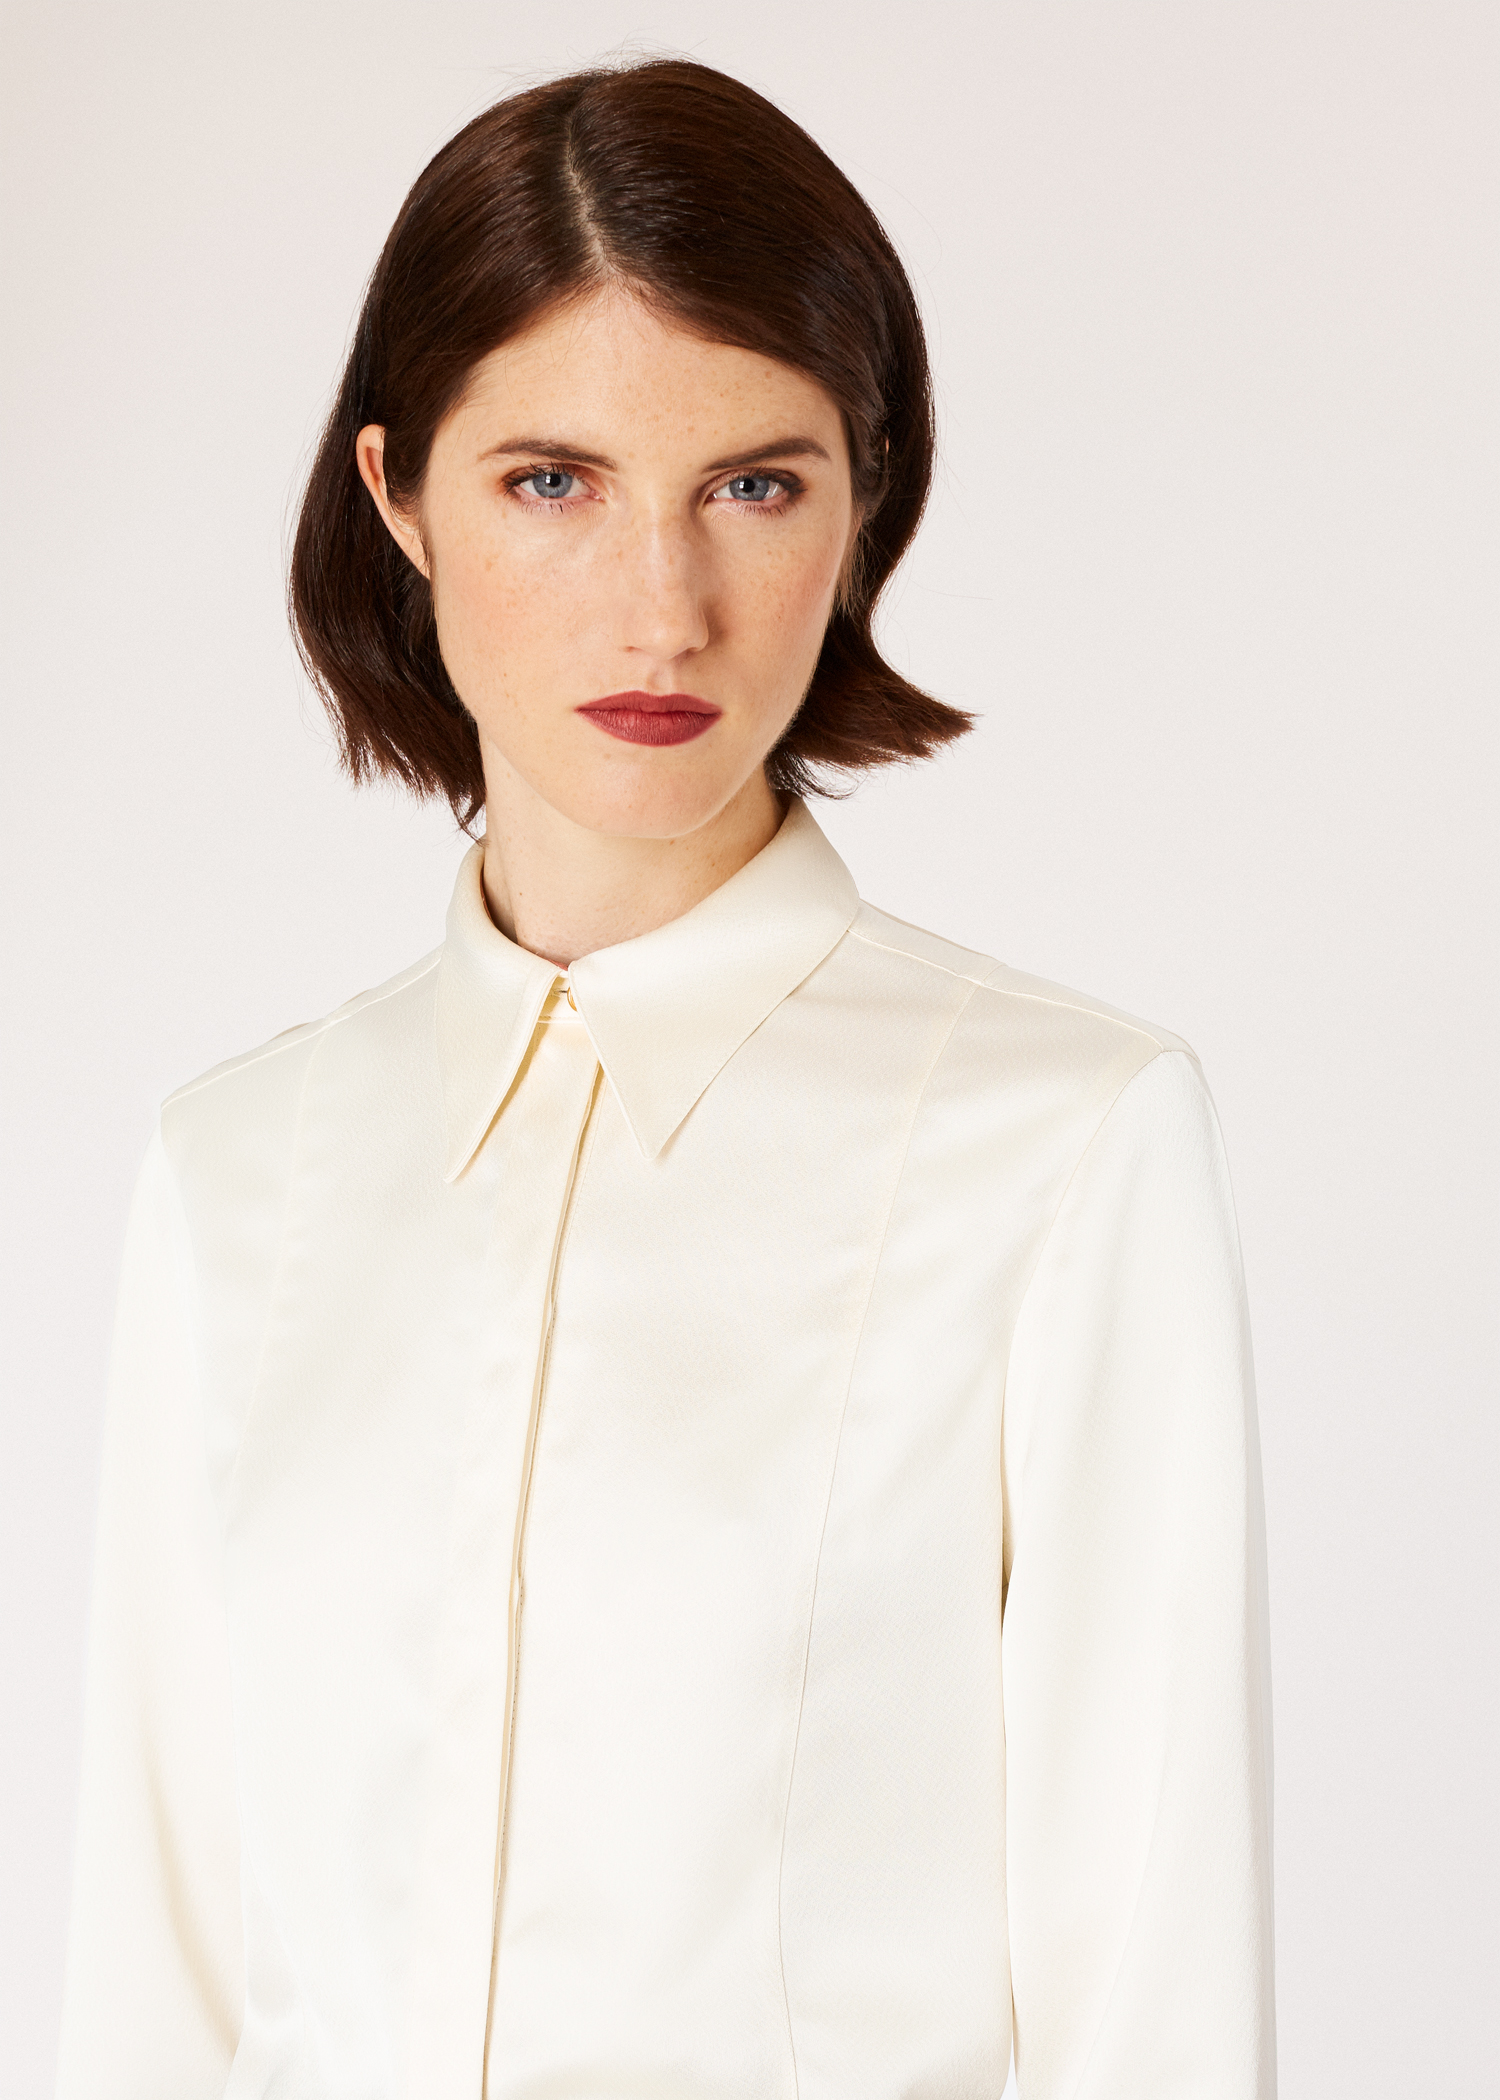 cc33a9eb6674 Model front detail shot - Women's Cream Satin Panelled Tuxedo Shirt Paul  Smith. Model front close up ...